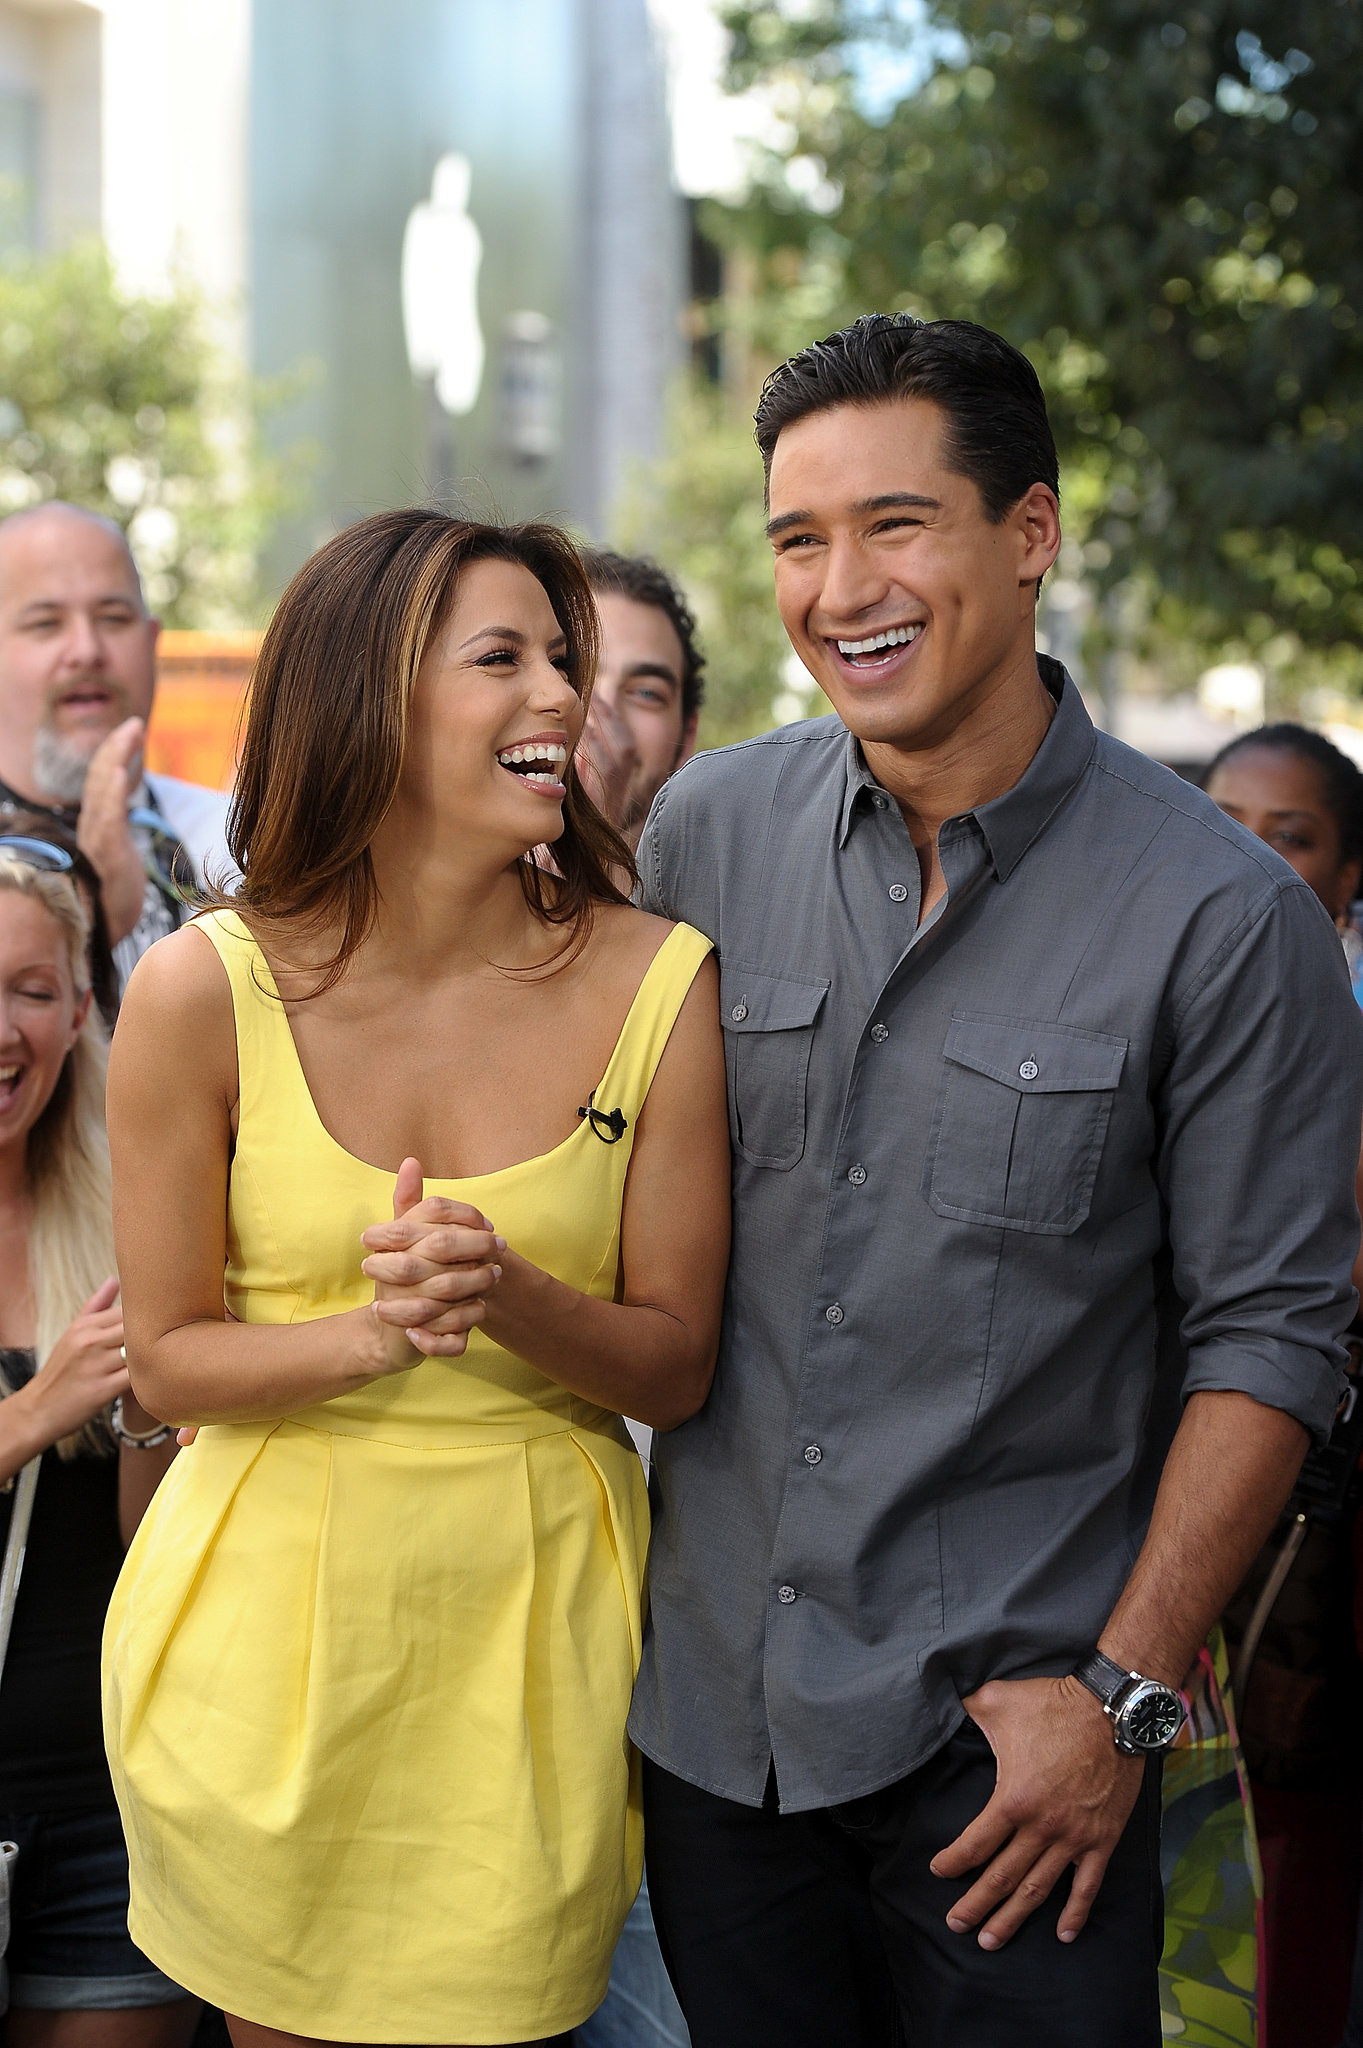 """Despite past rumors that they were a couple, Eva Longoria and Mario Lopez are actually more like family. Eva considers Mario a brother, while Mario shows support for his """"girl"""" Eva on Twitter."""